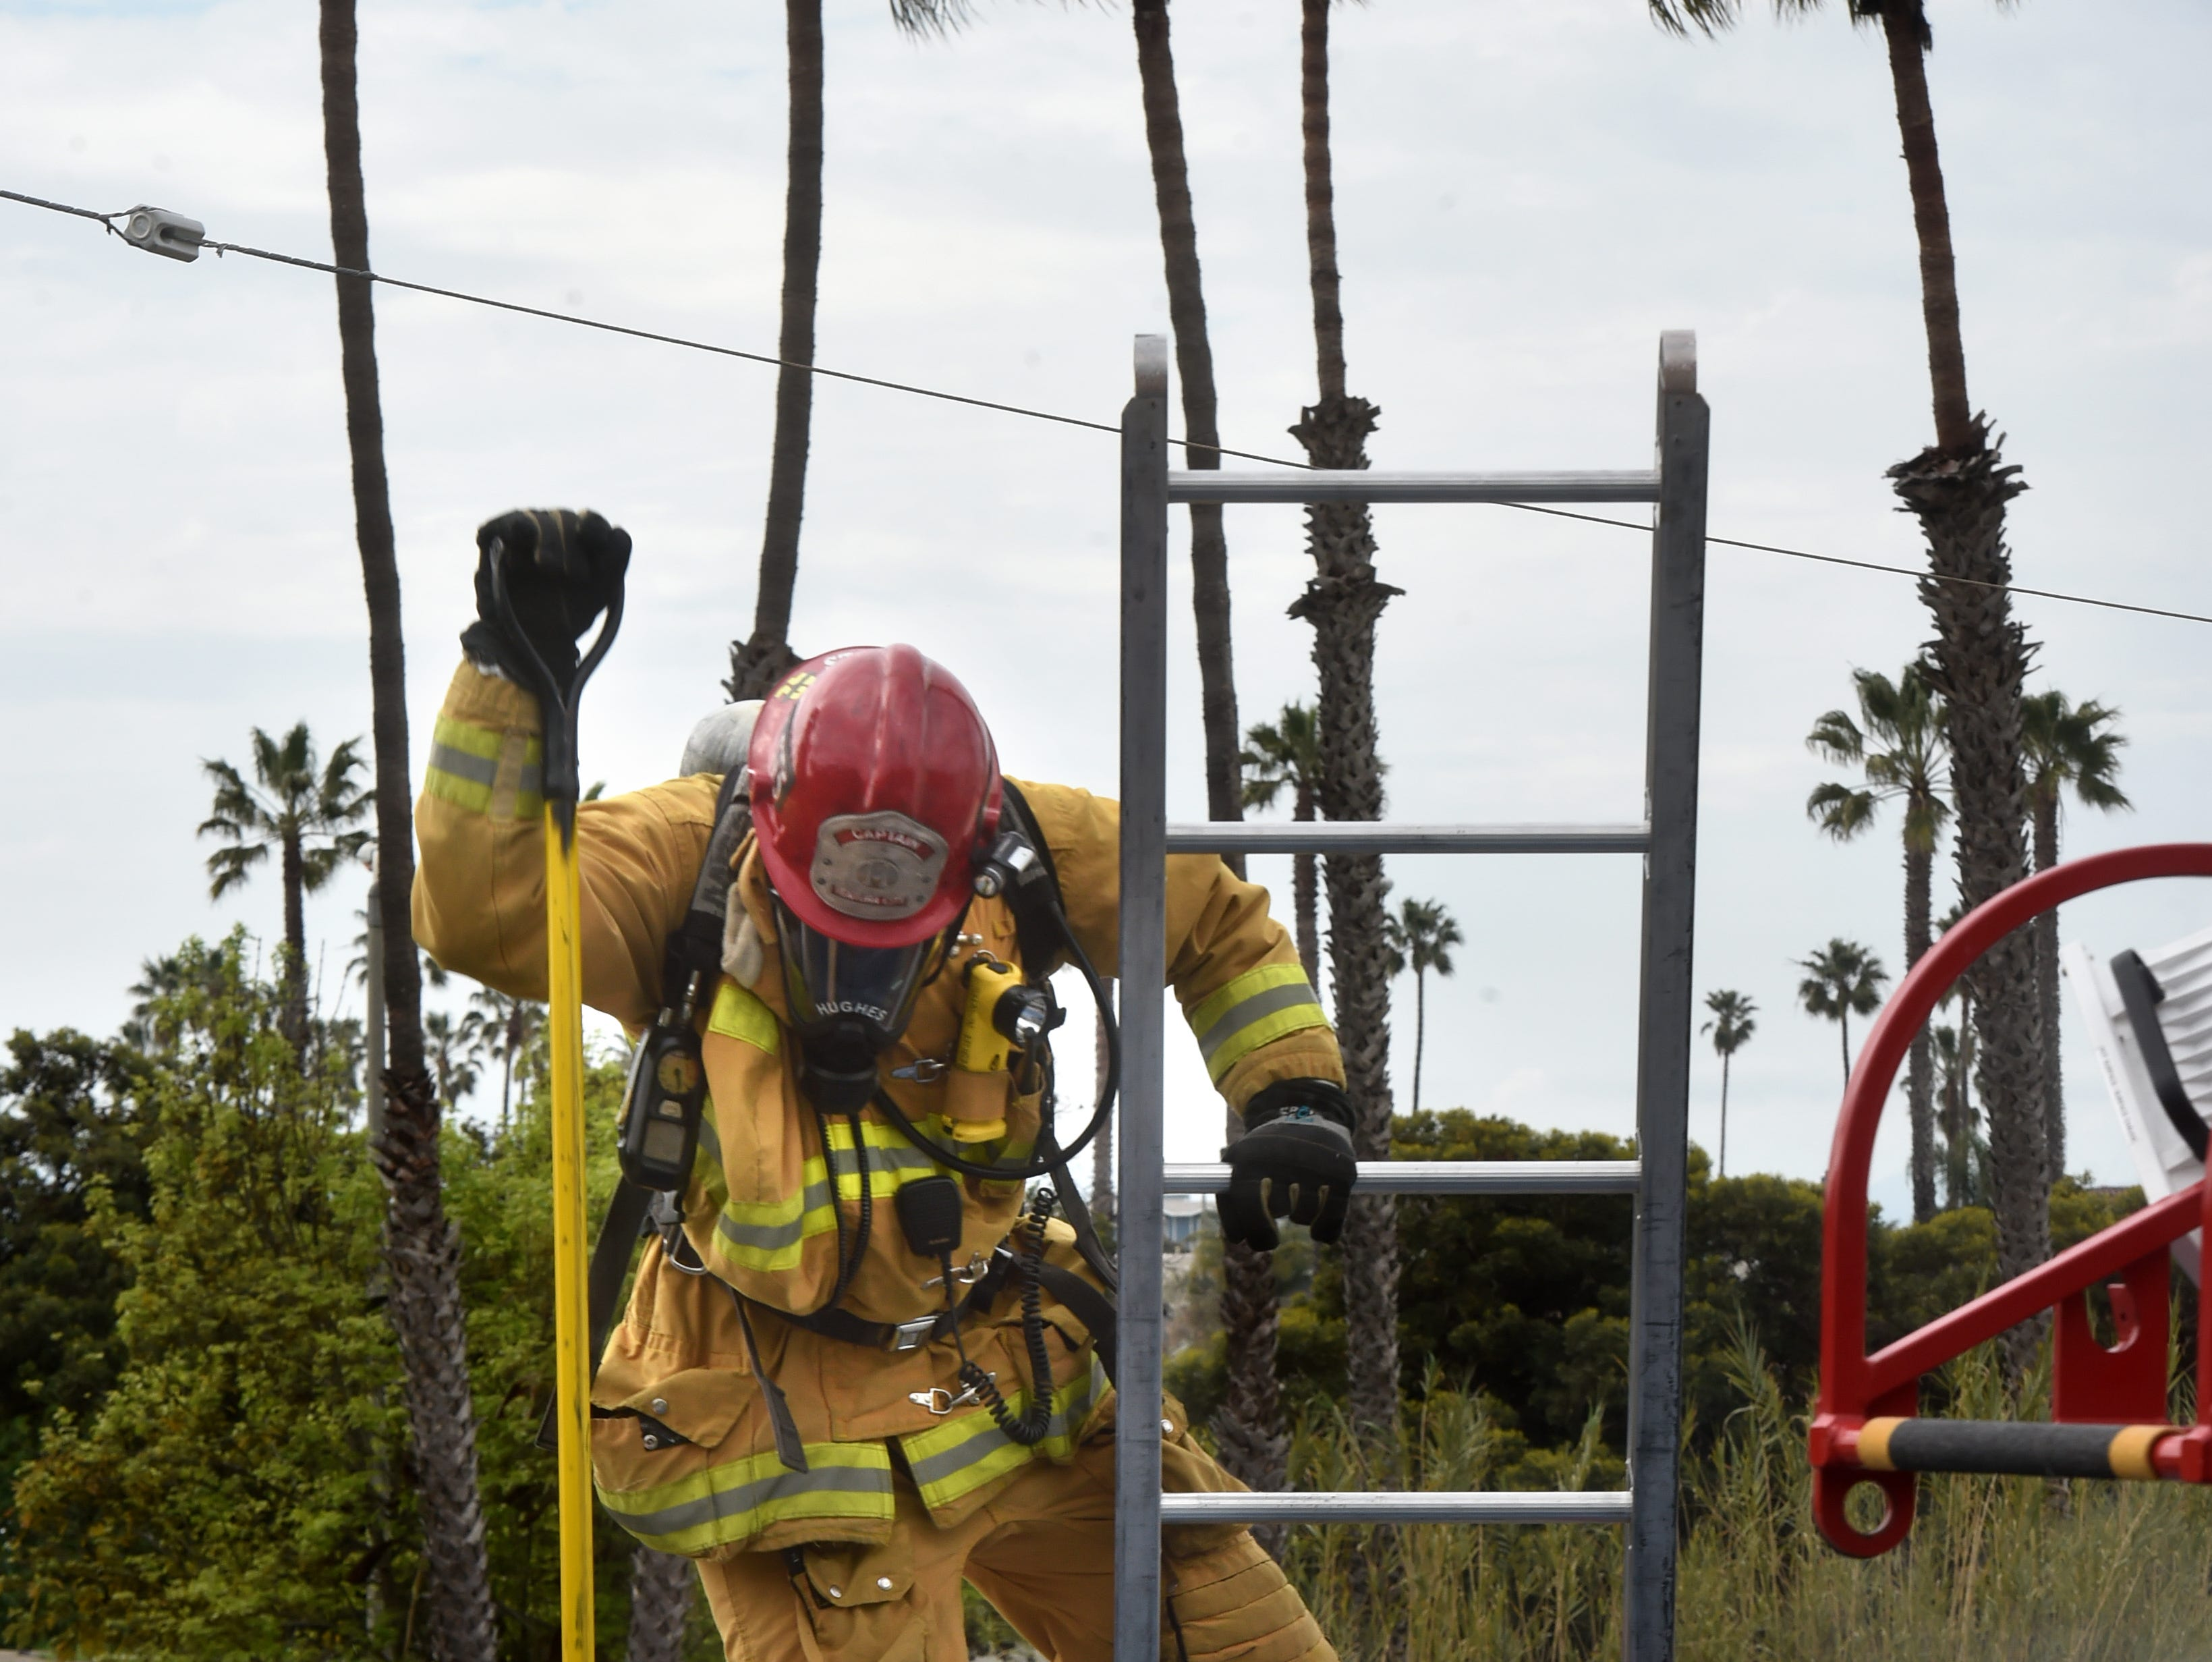 Capt. Shawn Hughes, of the Ventura Fire Department, reaches the top of a tall ladder during the city's annual Fire Safety Day on Tuesday.